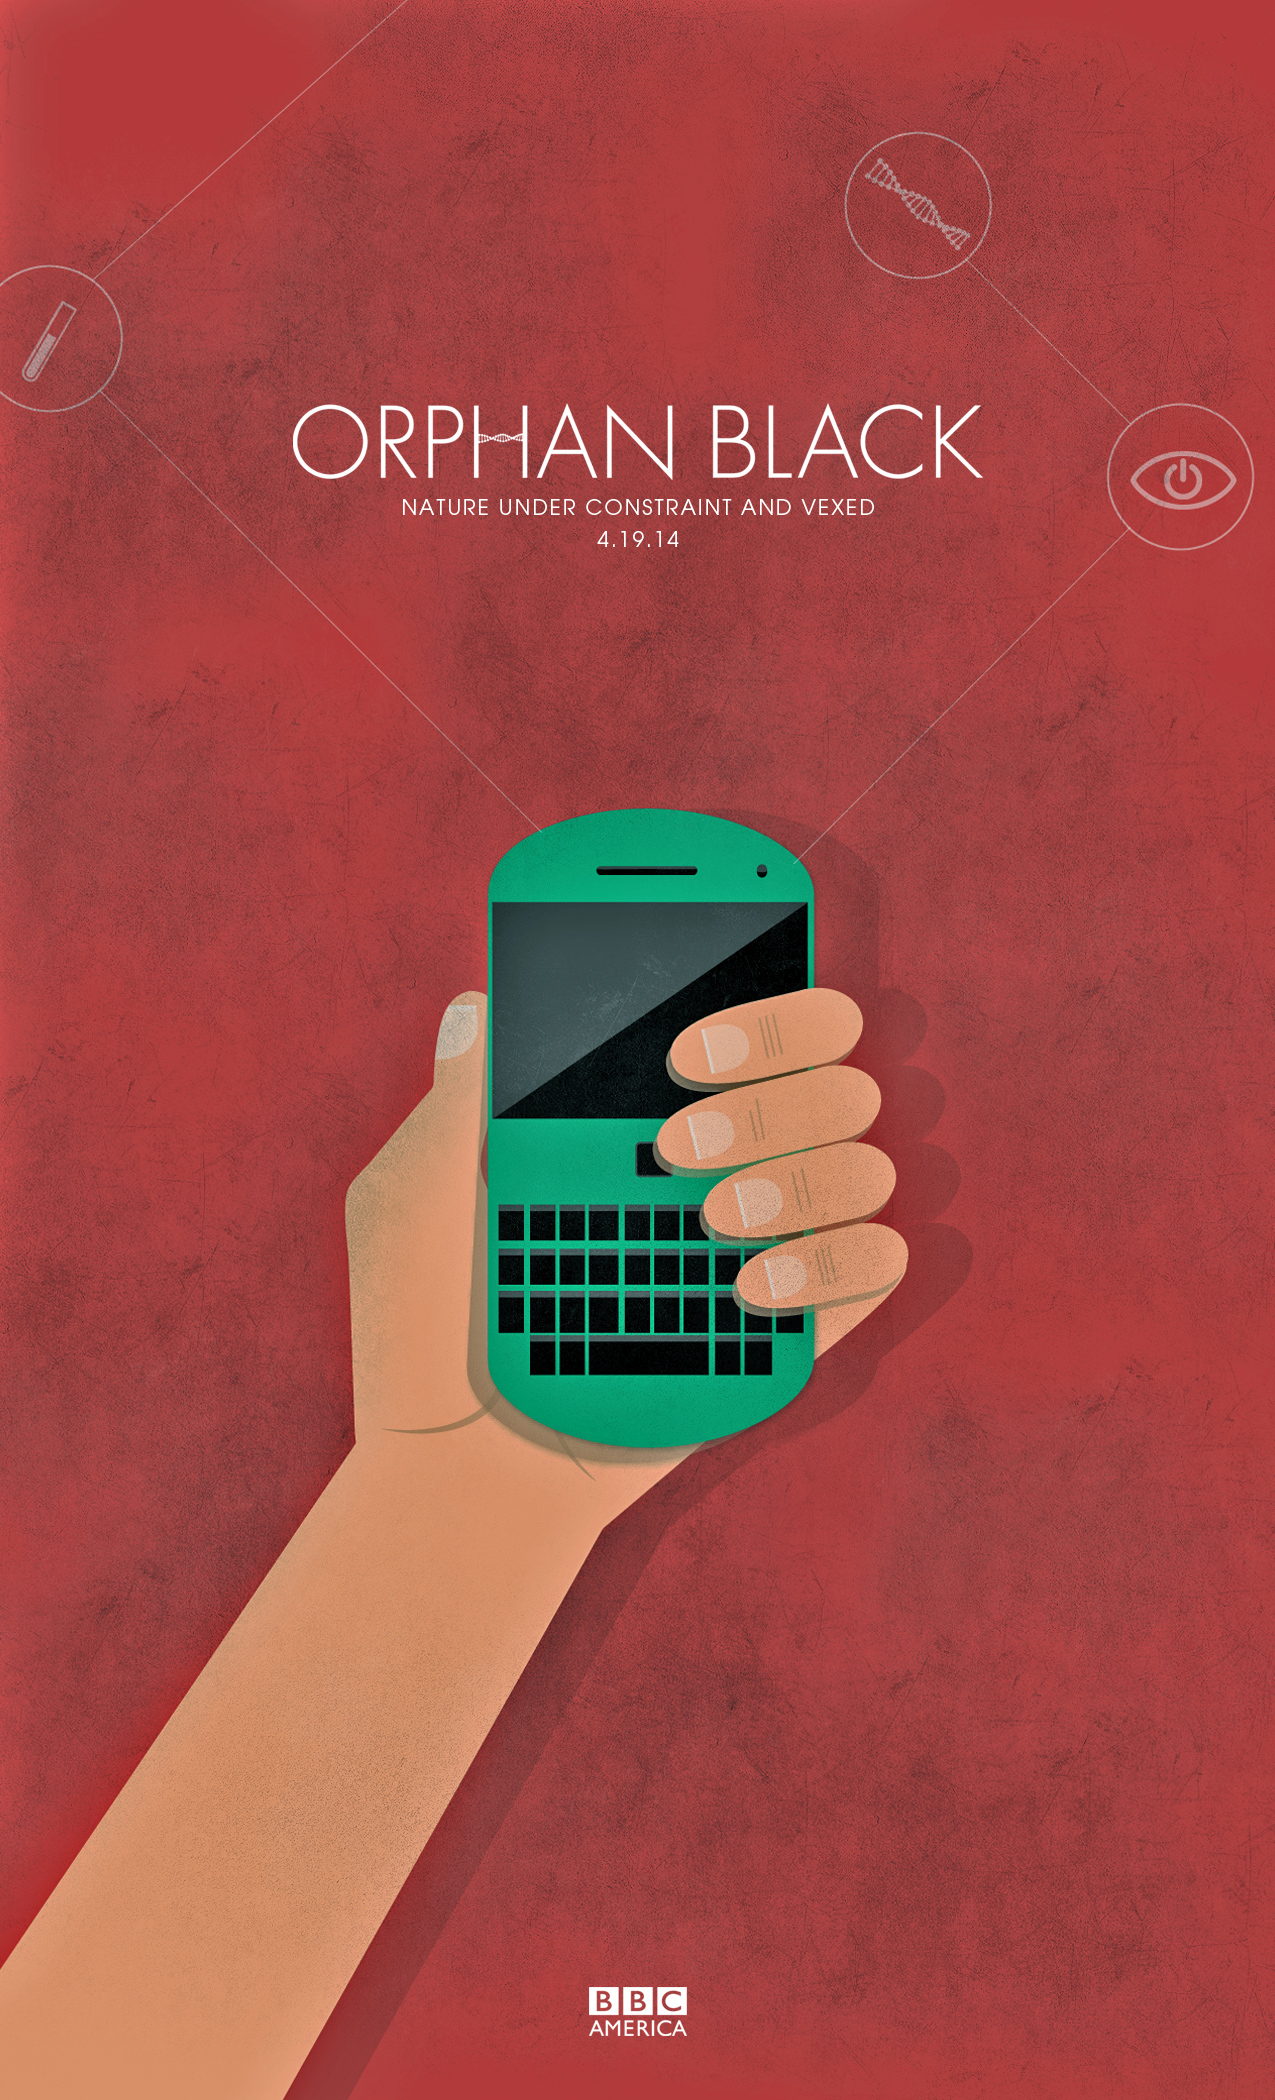 Orphan Black: Nature Under Constraint and Vexed